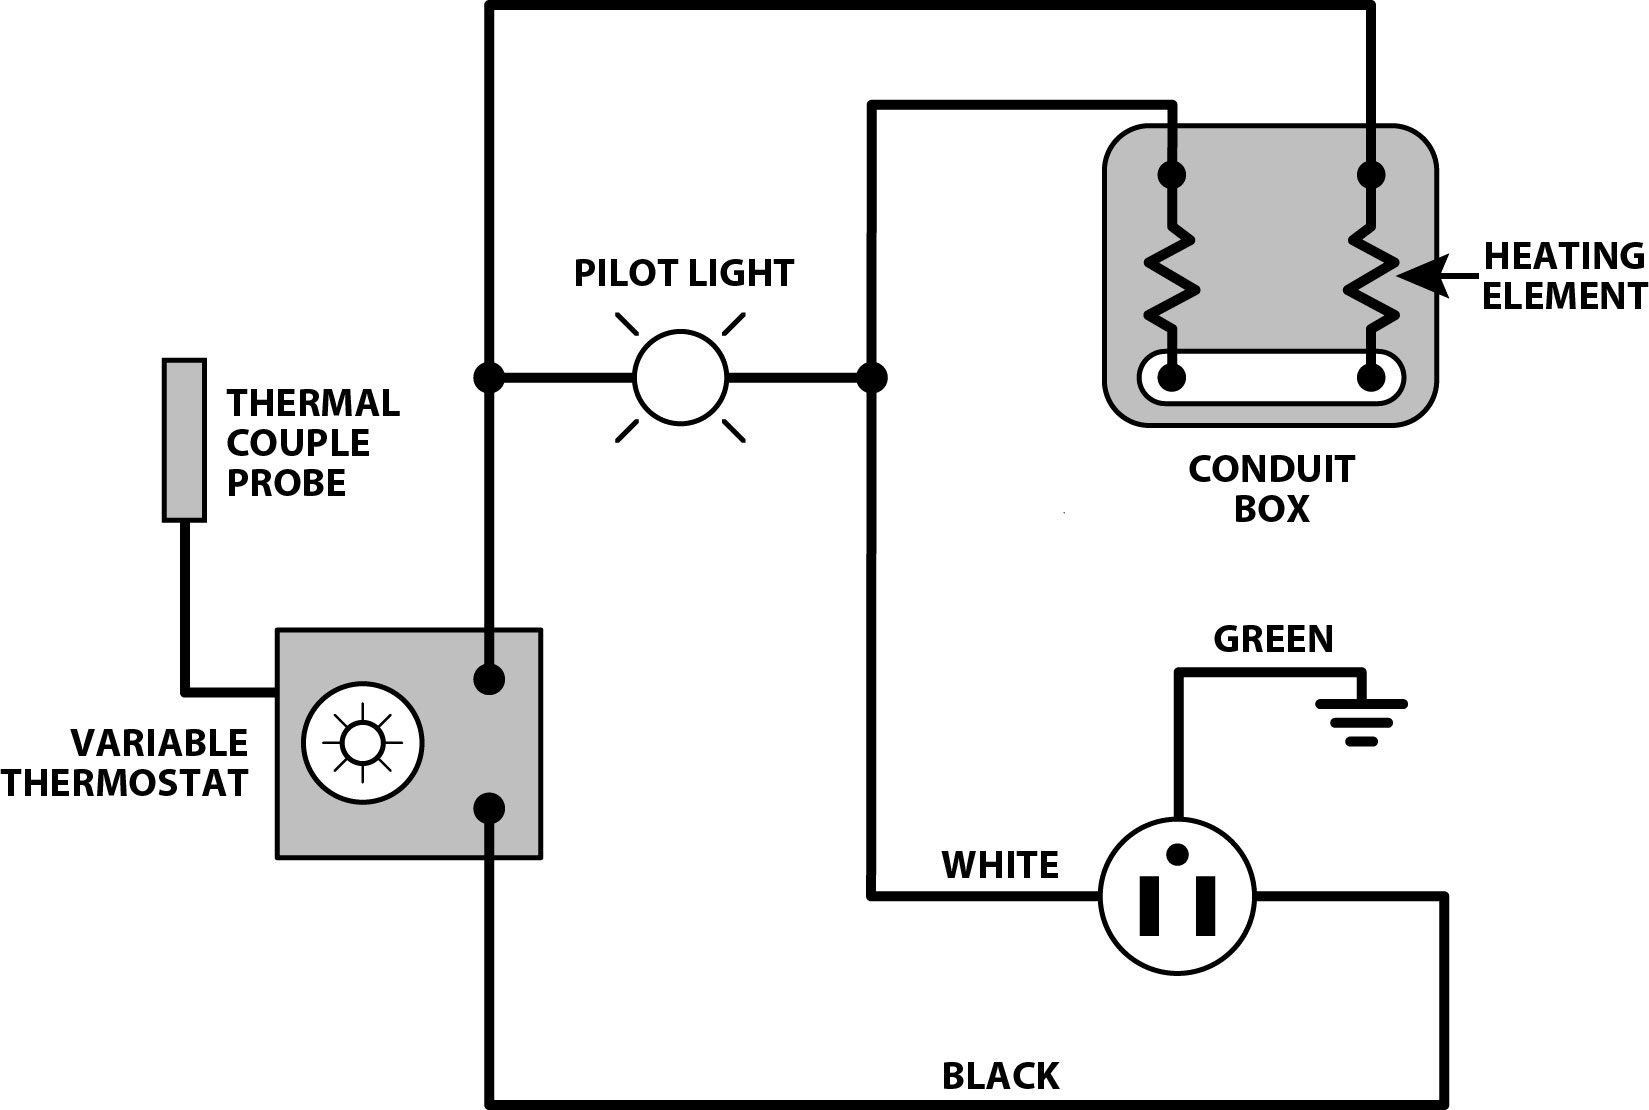 Wiring Diagram For A Dryer Heating Element